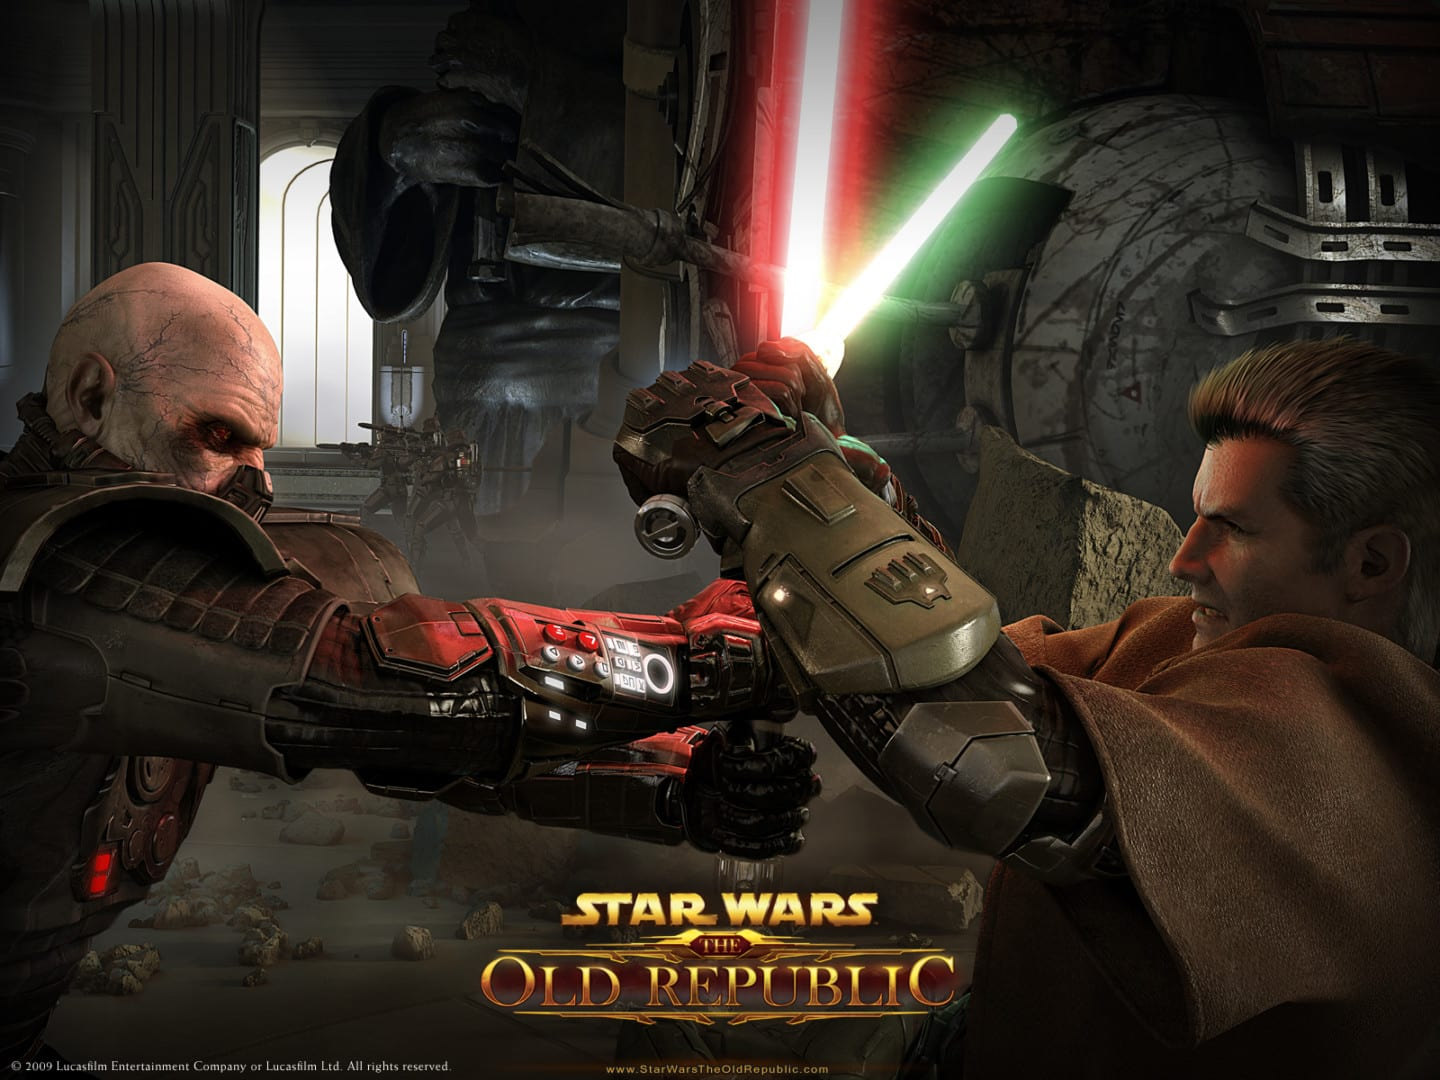 old republic not doing so well